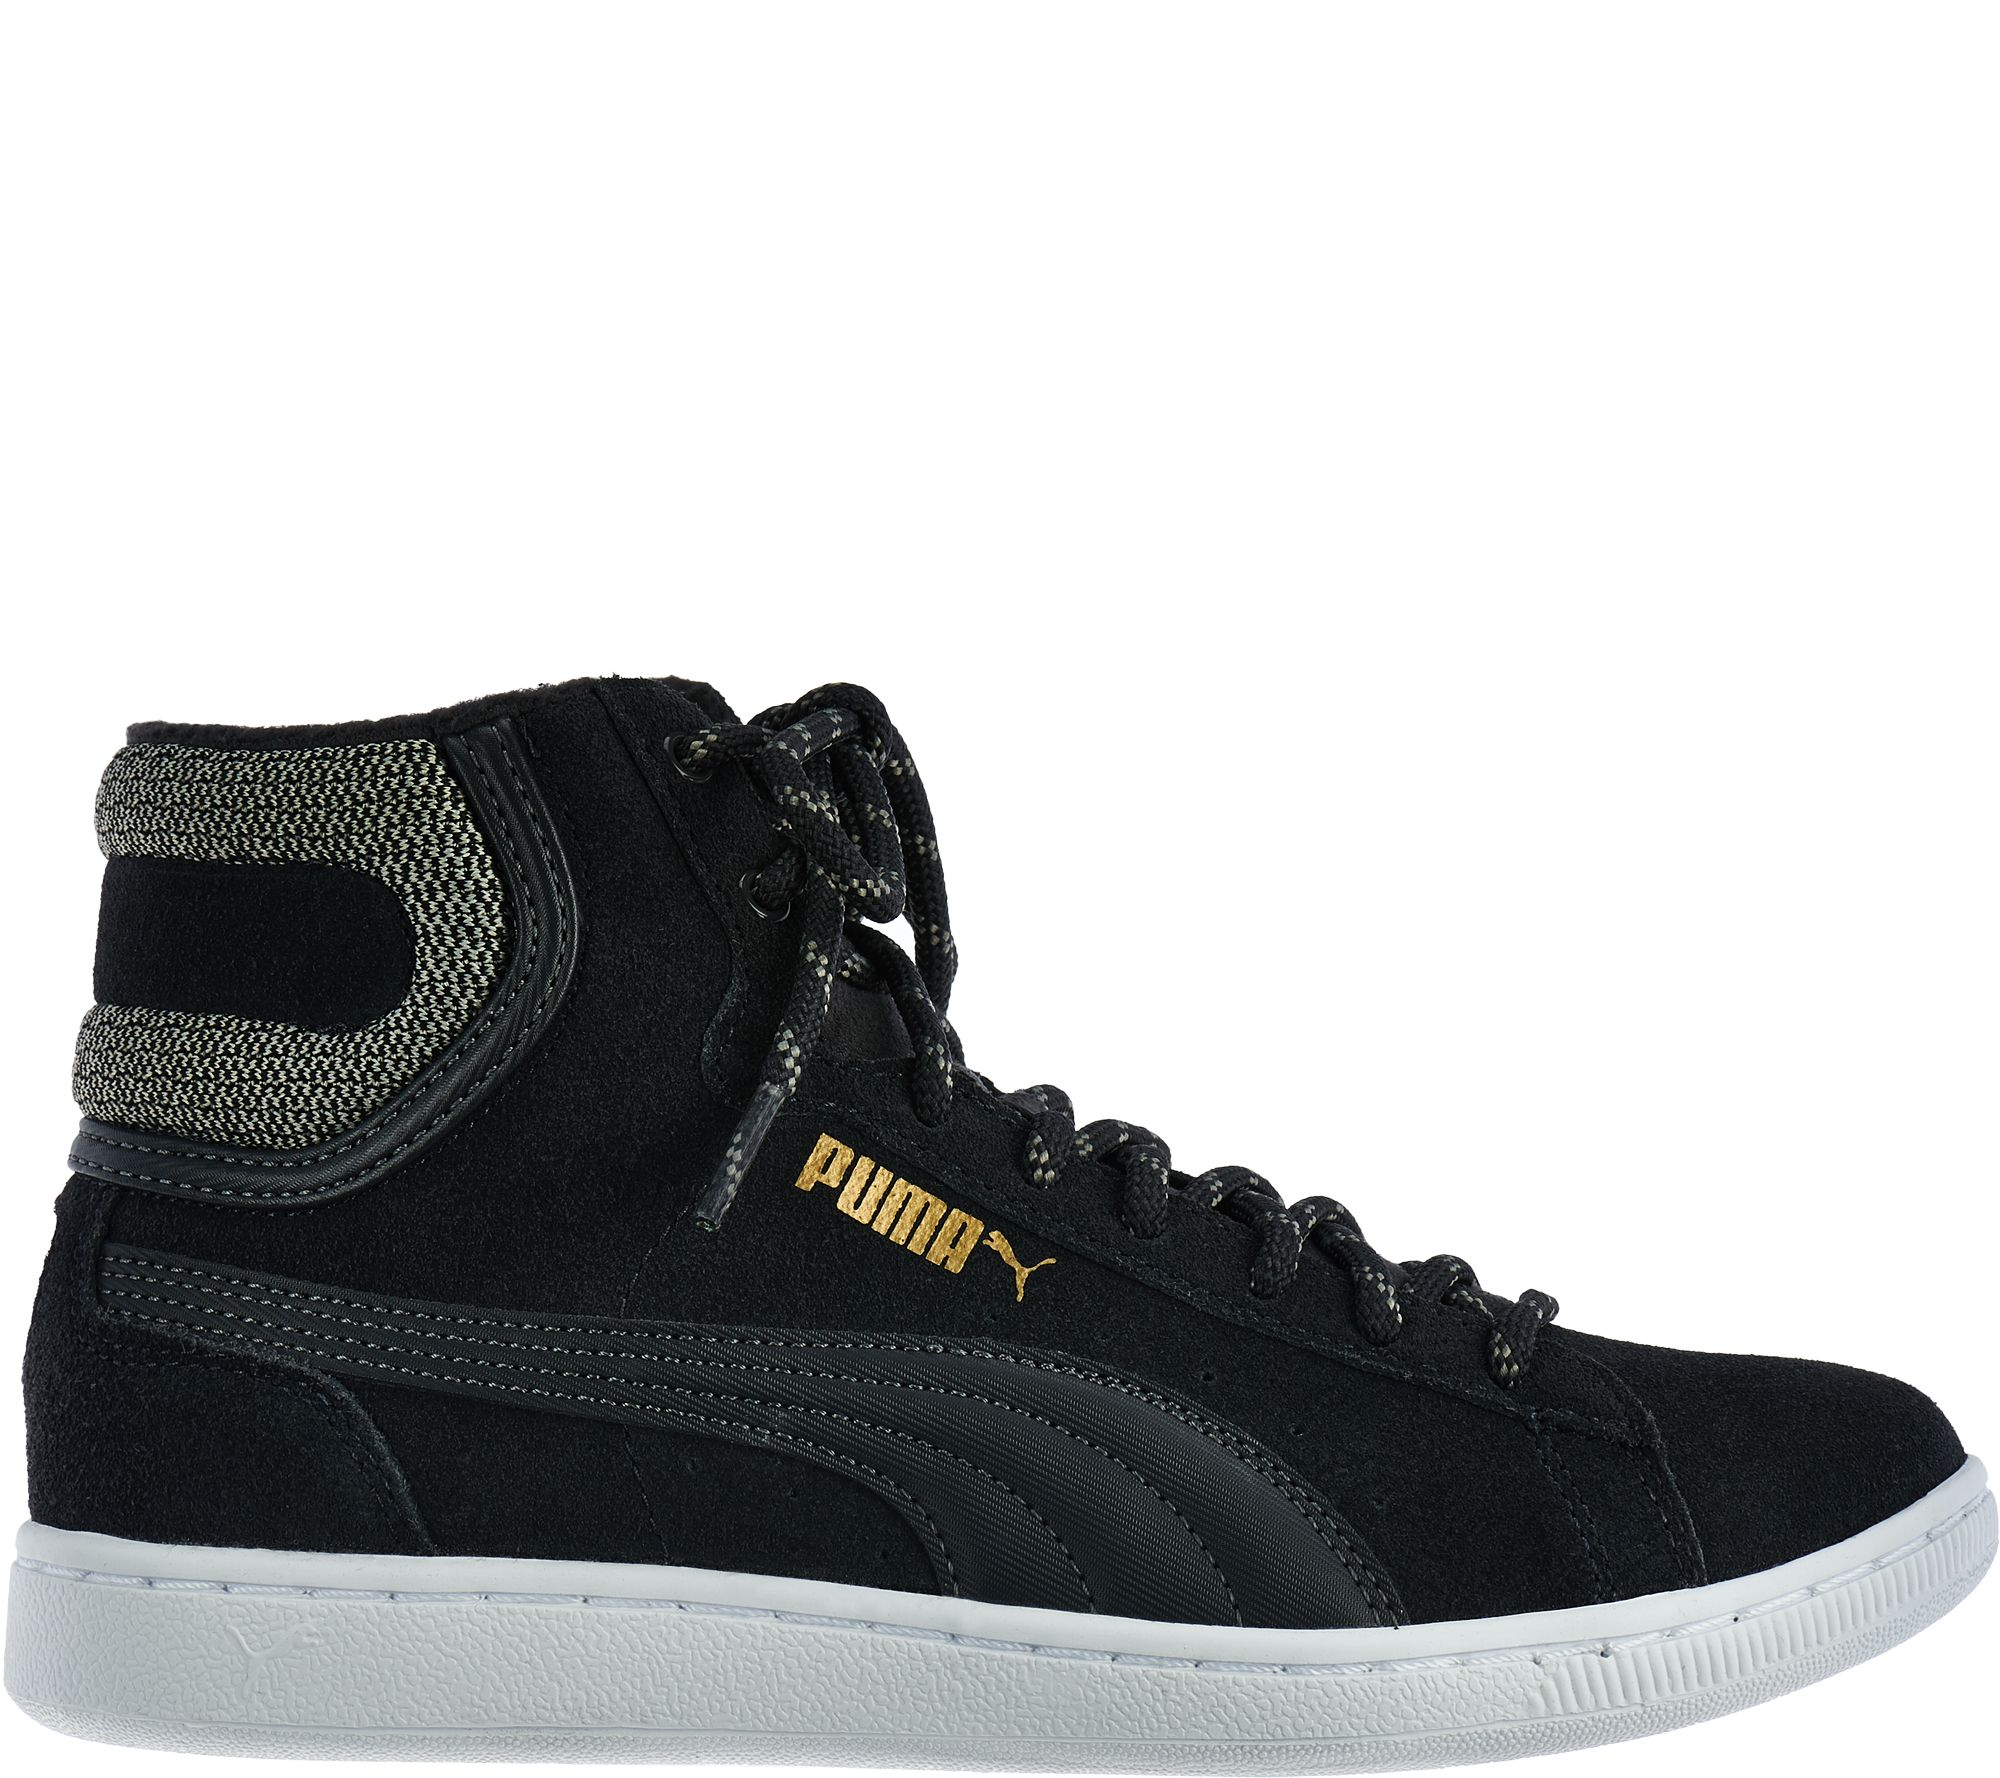 17258c93d12 PUMA Suede Hightop Lace-up Sneakers - Vikky Mid - Page 1 — QVC.com